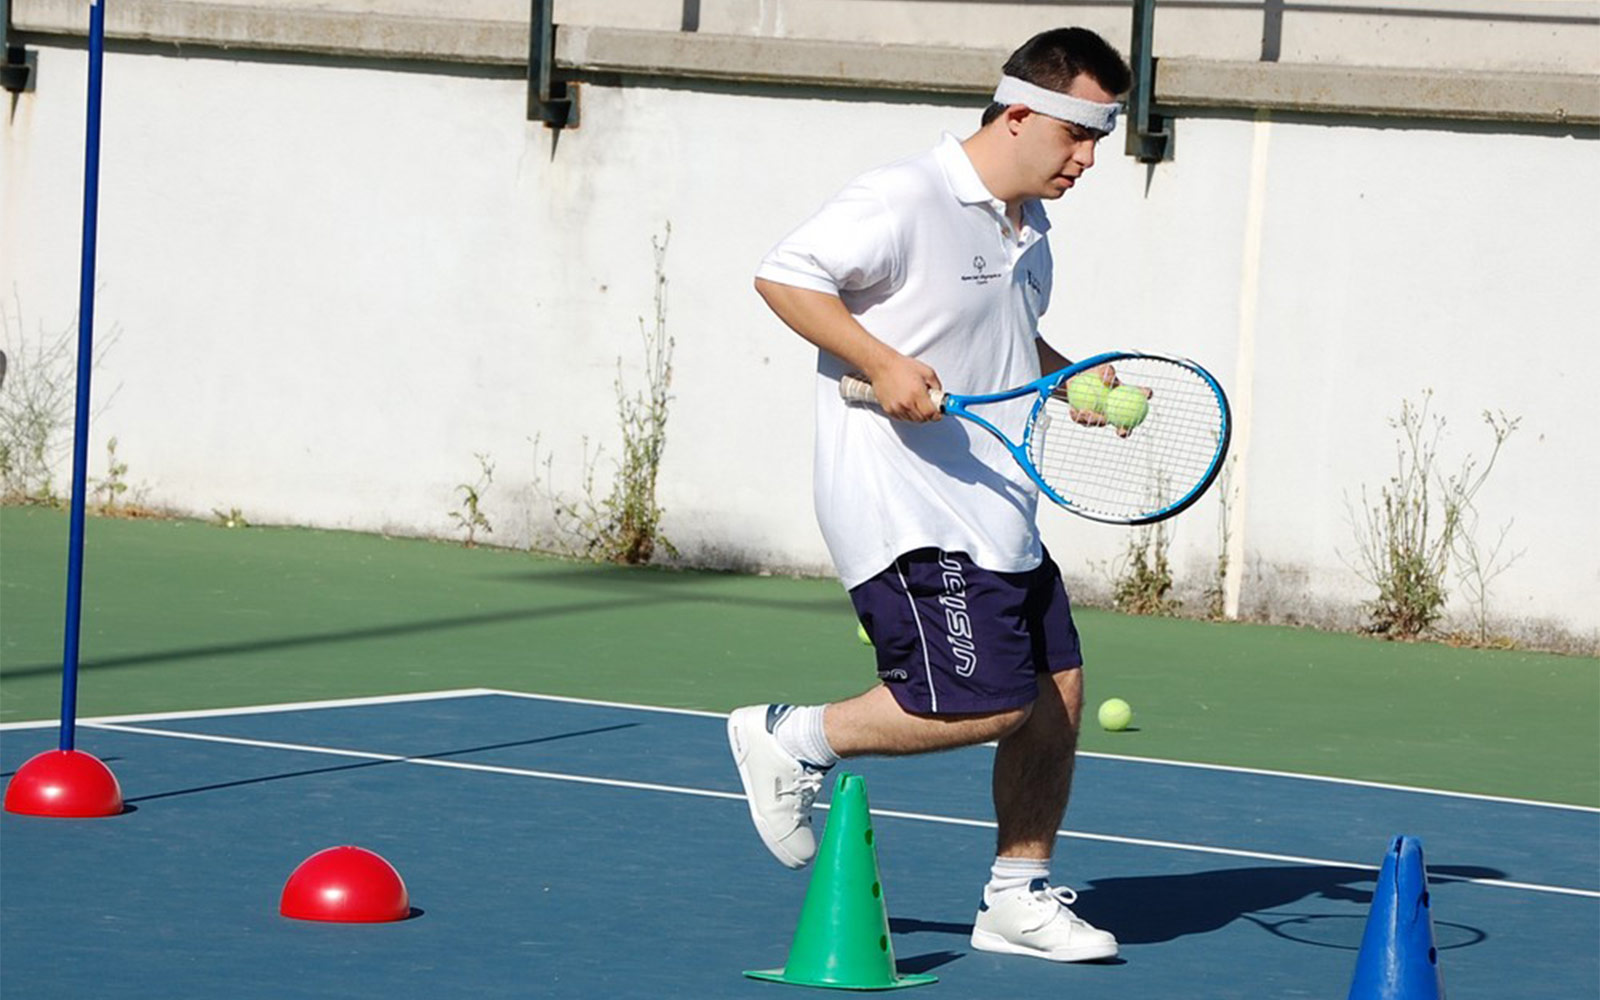 A player training in one of the tennis courts form El Plantío